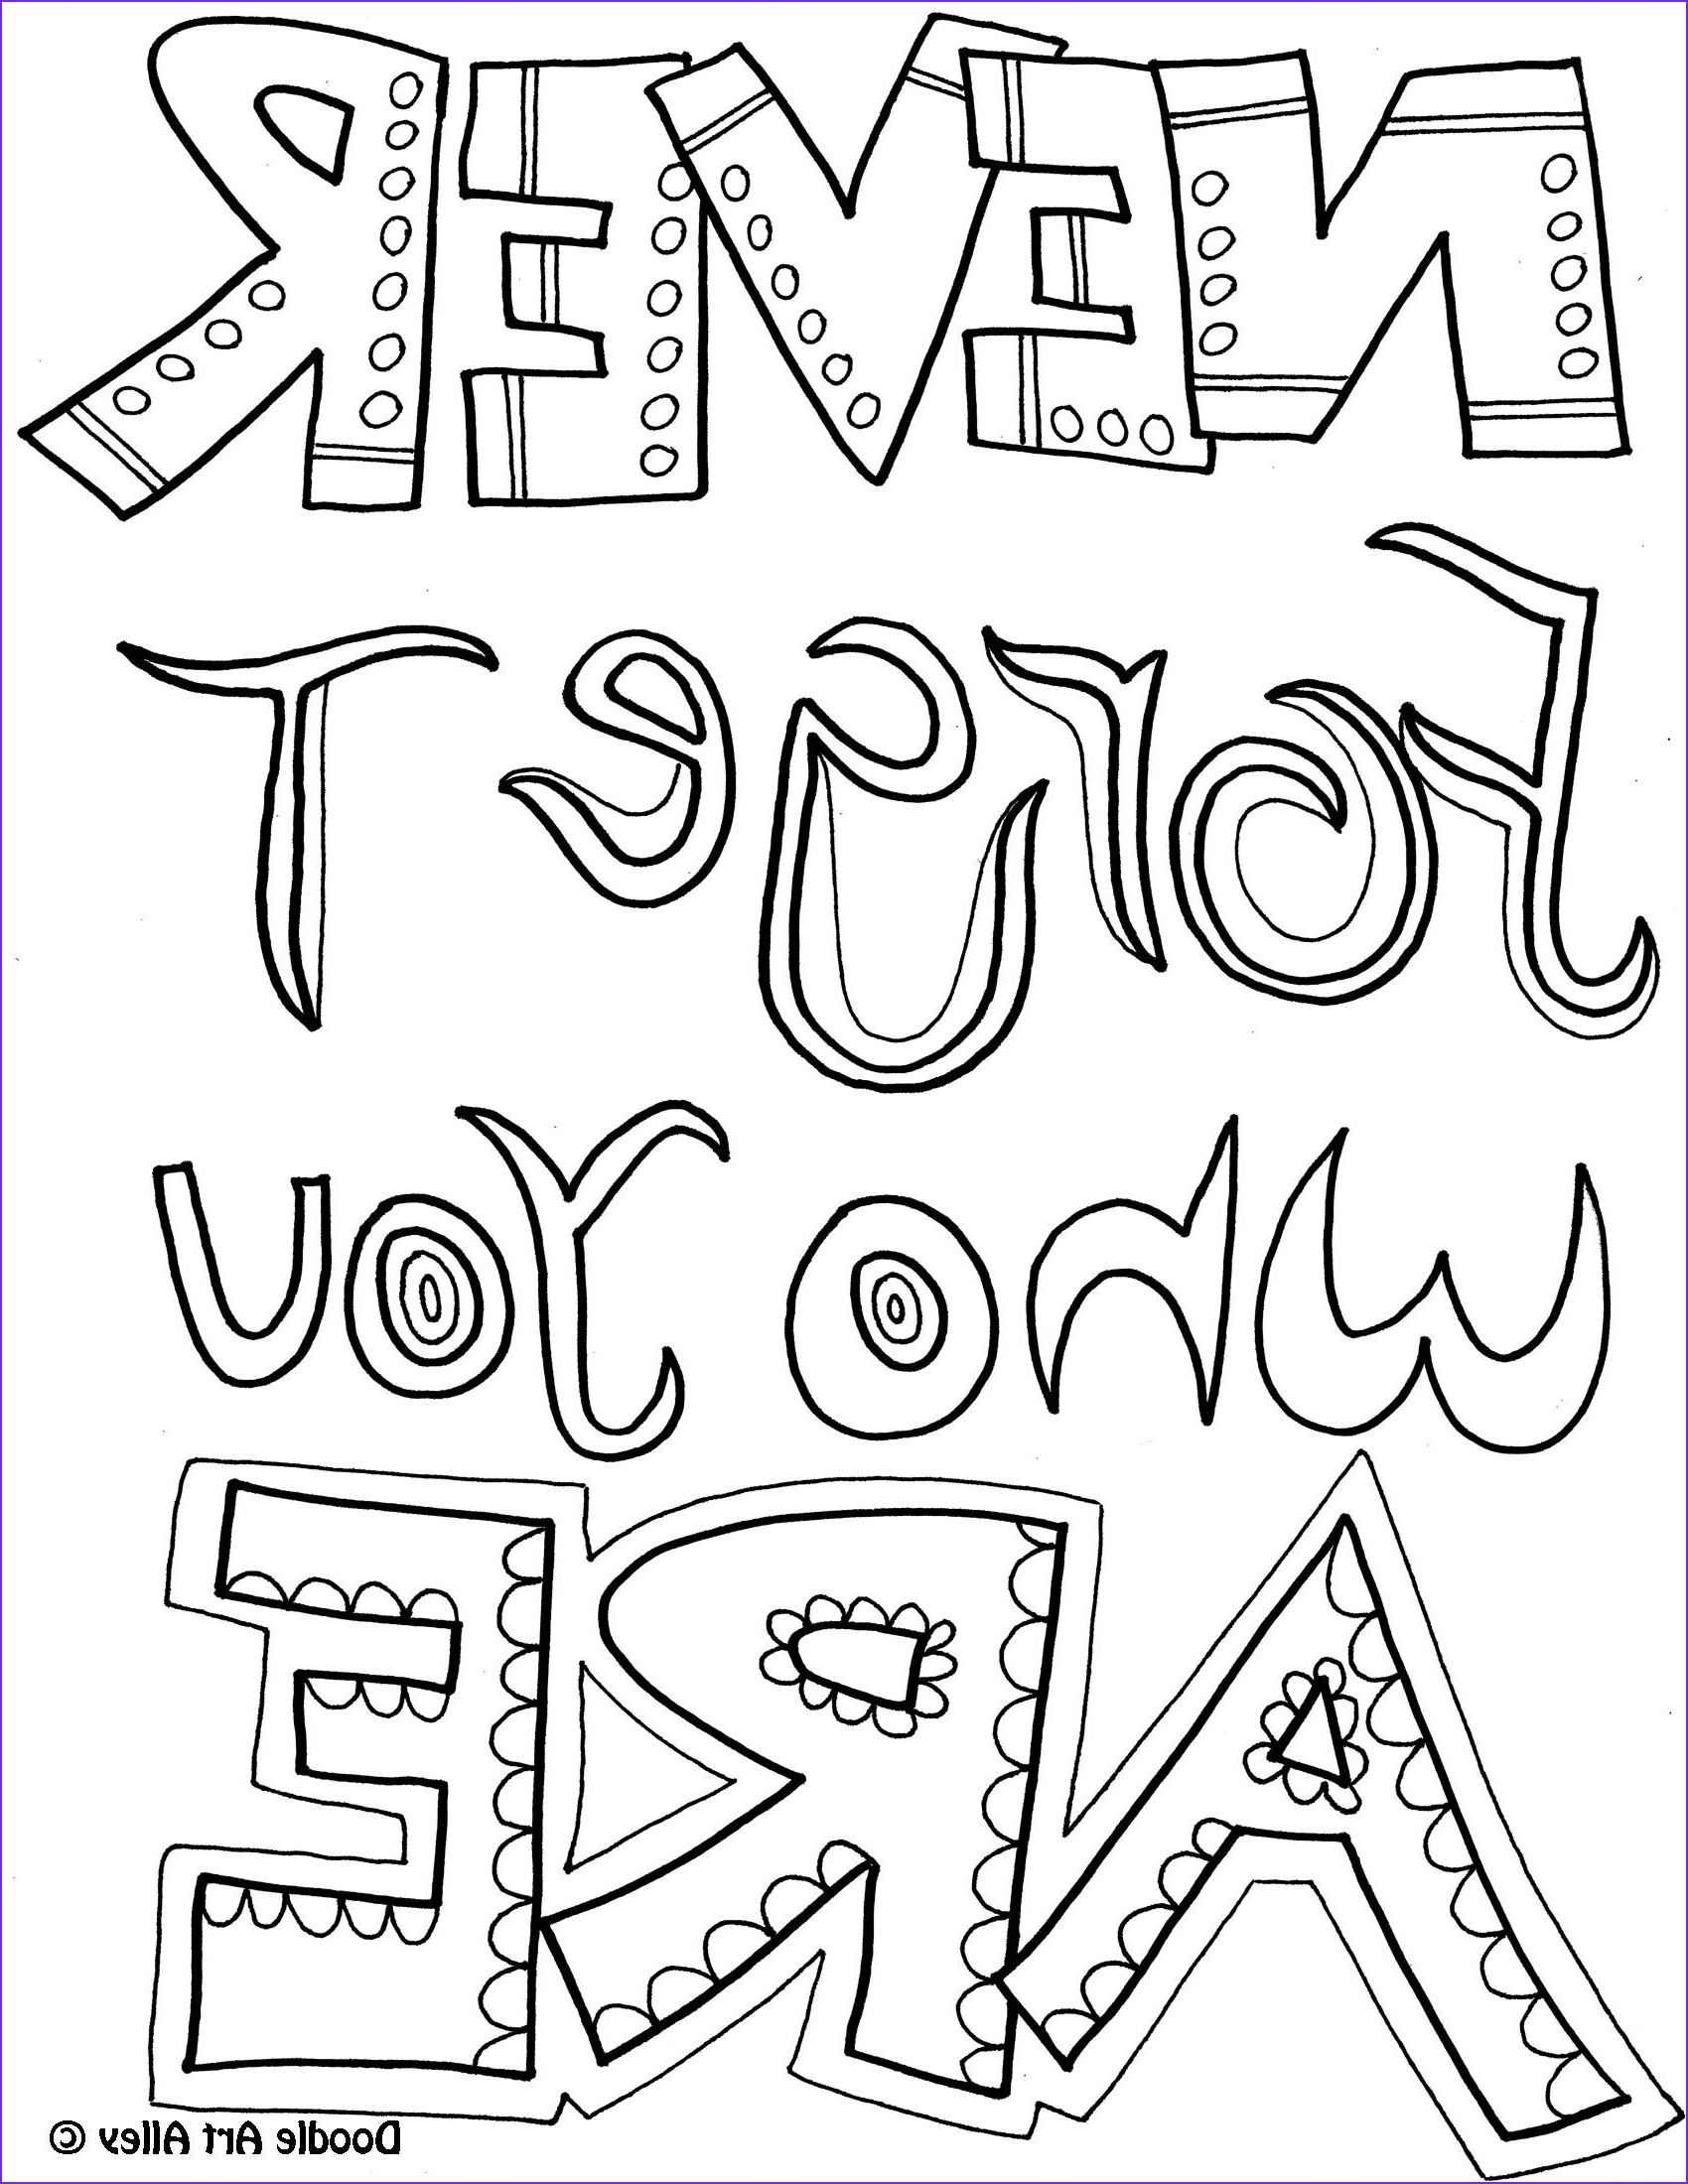 Motivational Coloring Pages Awesome Collection Inspirational Quotes Coloring Pages Quotesgram